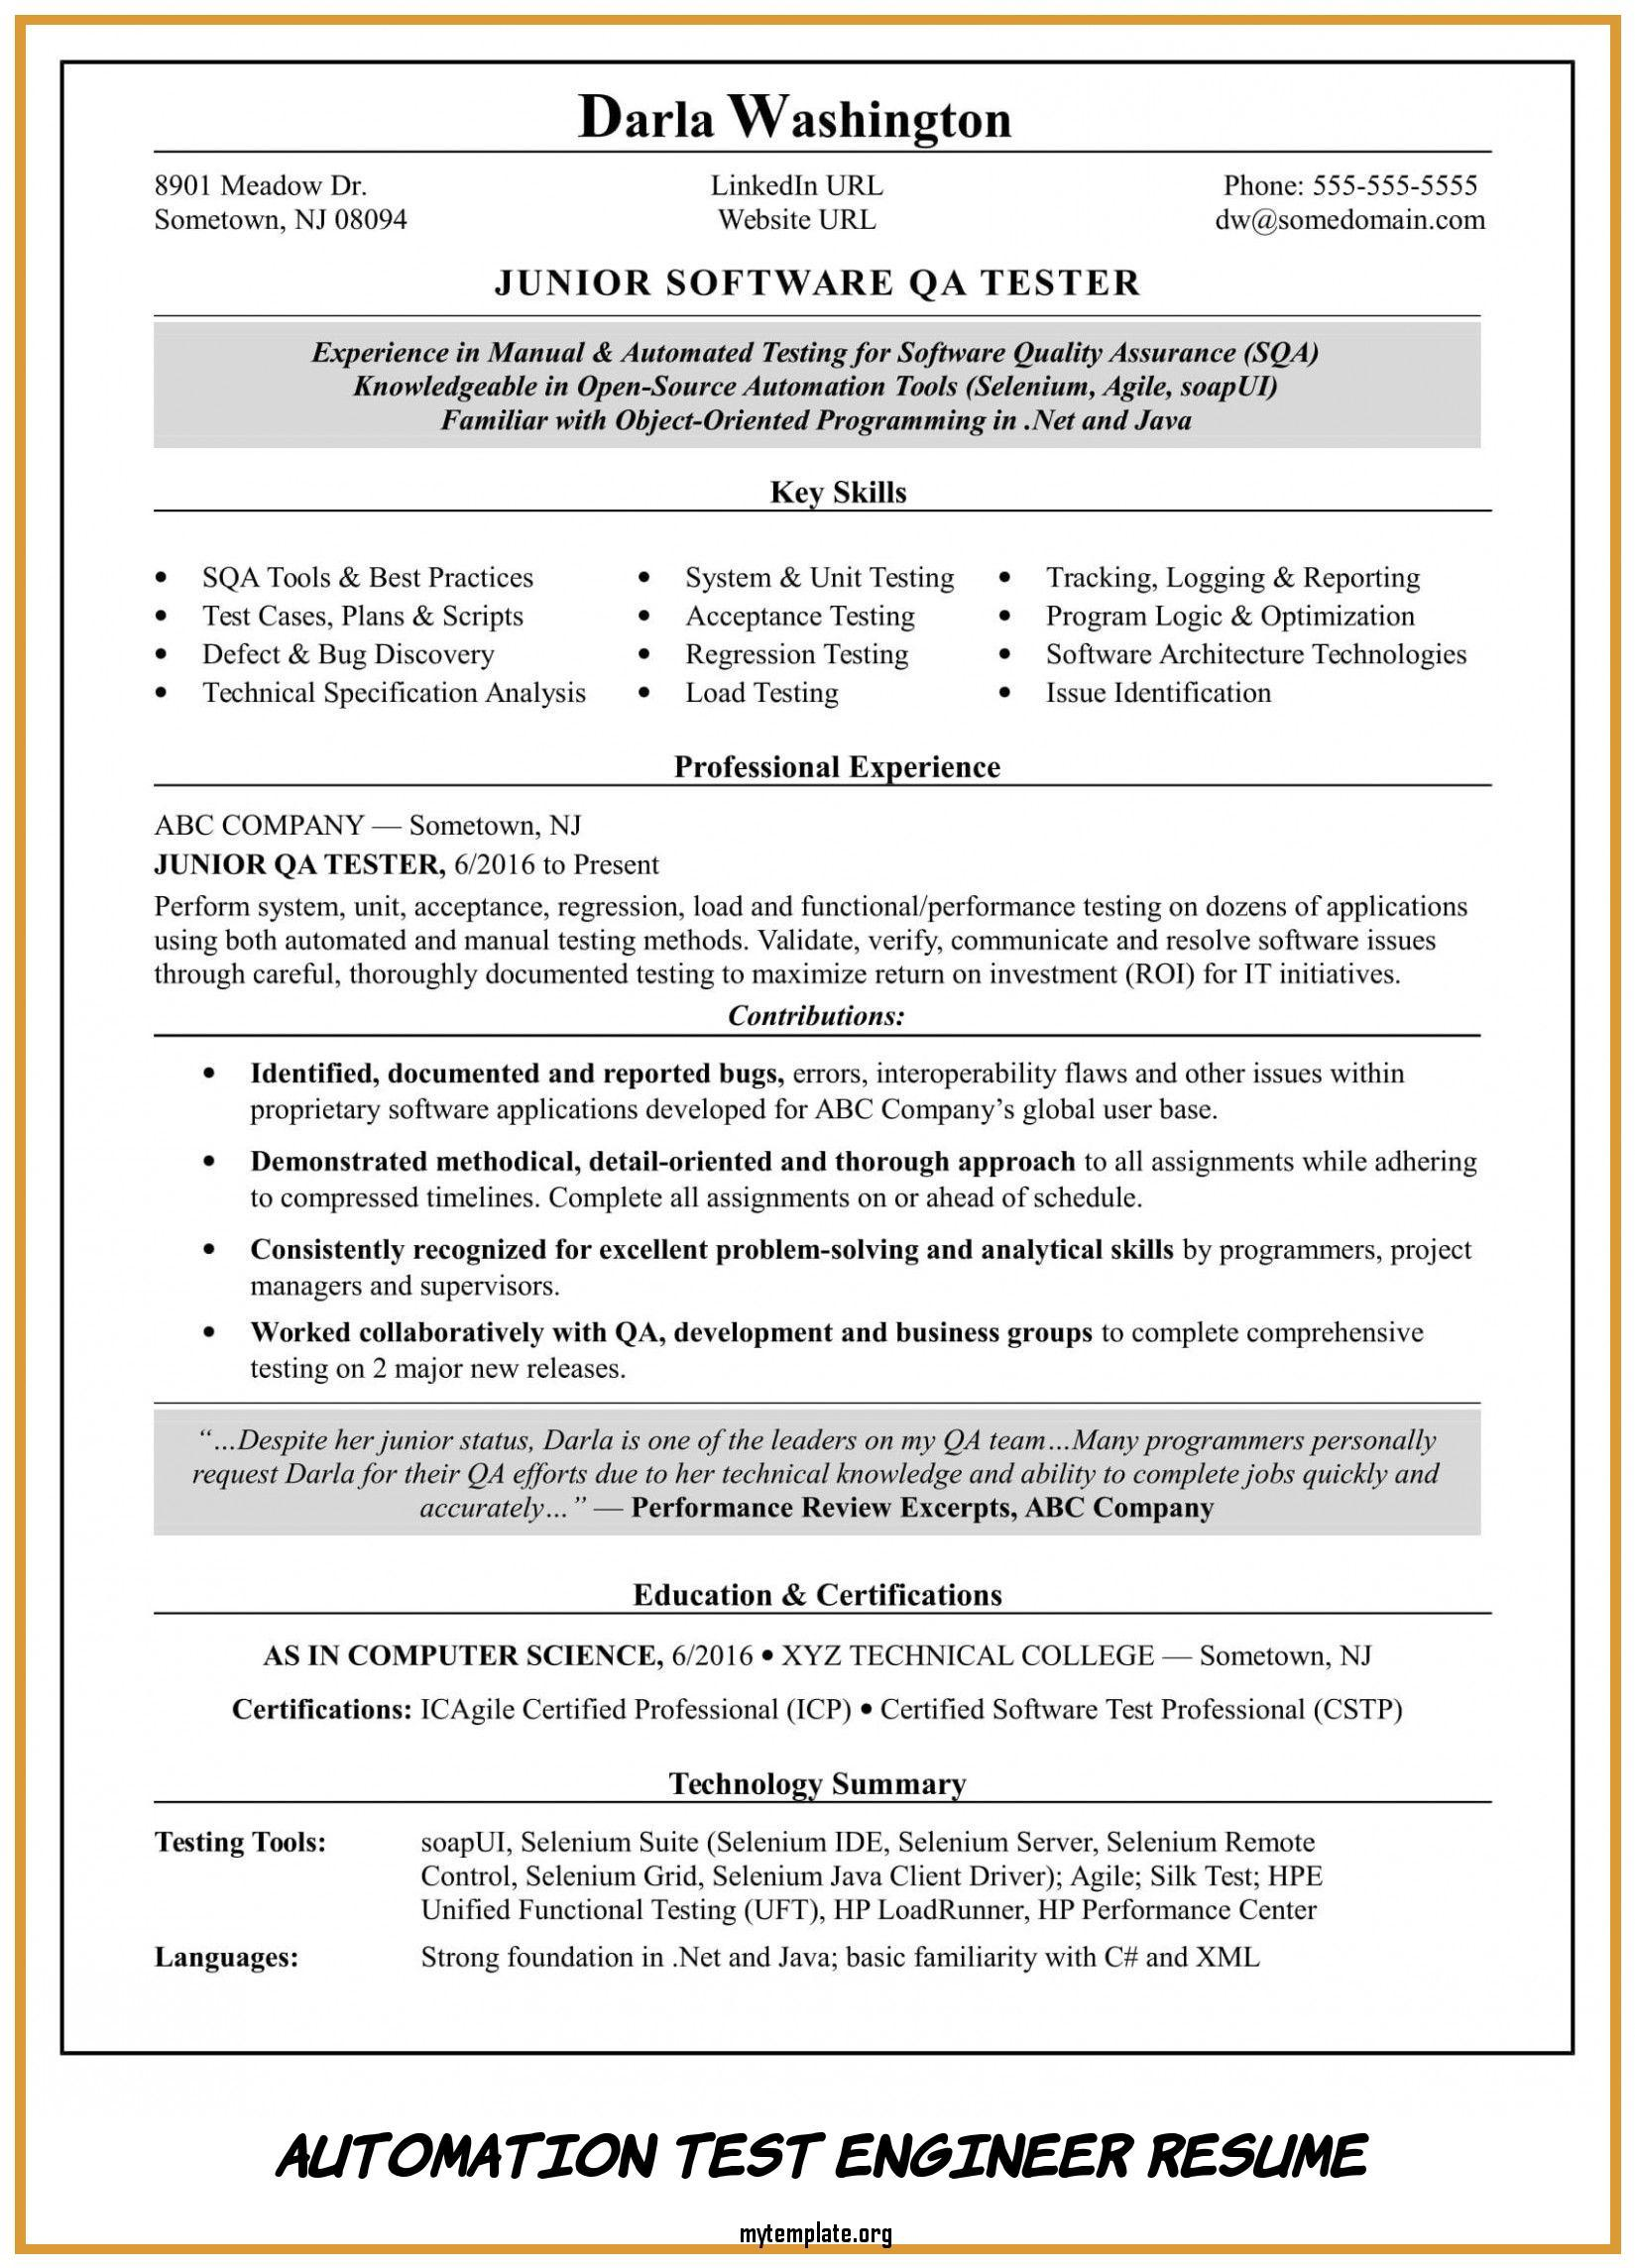 automation test engineer resume free templates headline for of take look at pin music Resume Resume Headline For Test Engineer